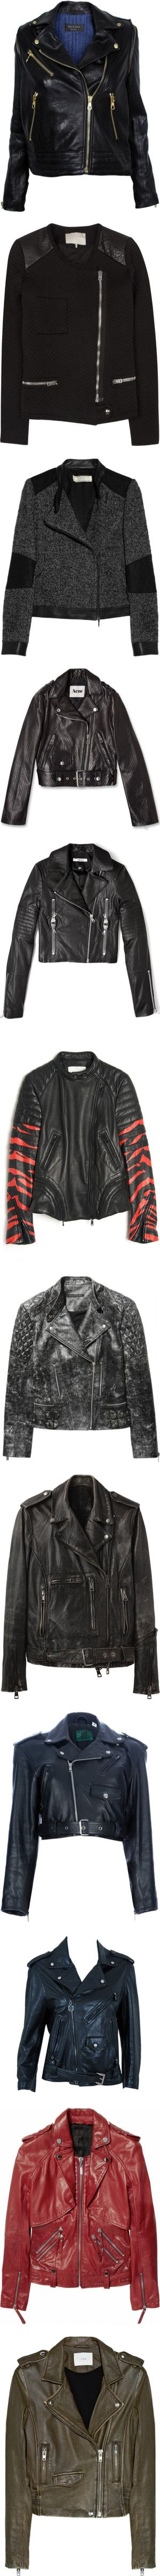 """""""The Bad Ass Jacket Collection"""" by patpatkay ❤ liked on Polyvore"""